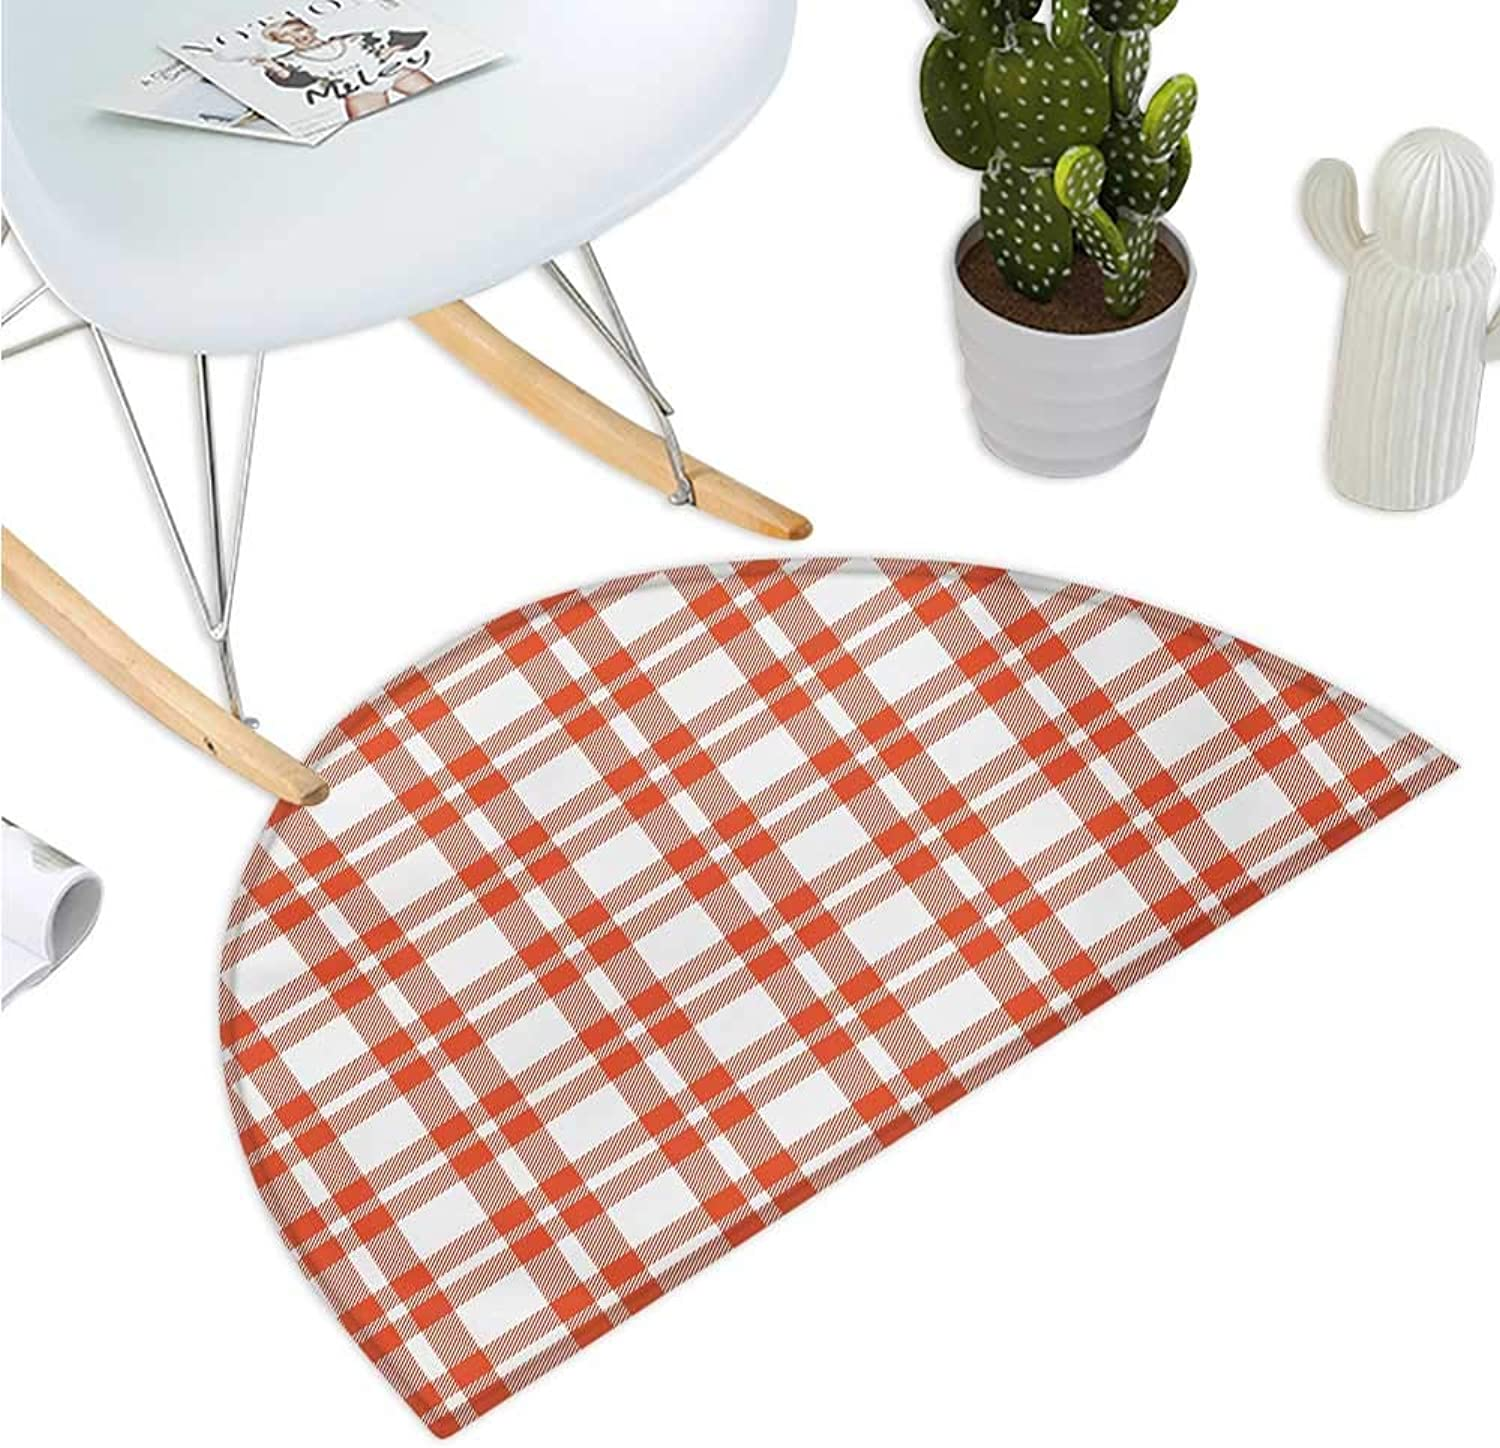 Plaid Semicircular Cushion Retro-Modern Style Checkered Pattern Squares and Stripes Abstract Old Fashioned Entry Door Mat H 35.4  xD 53.1  Vermilion White